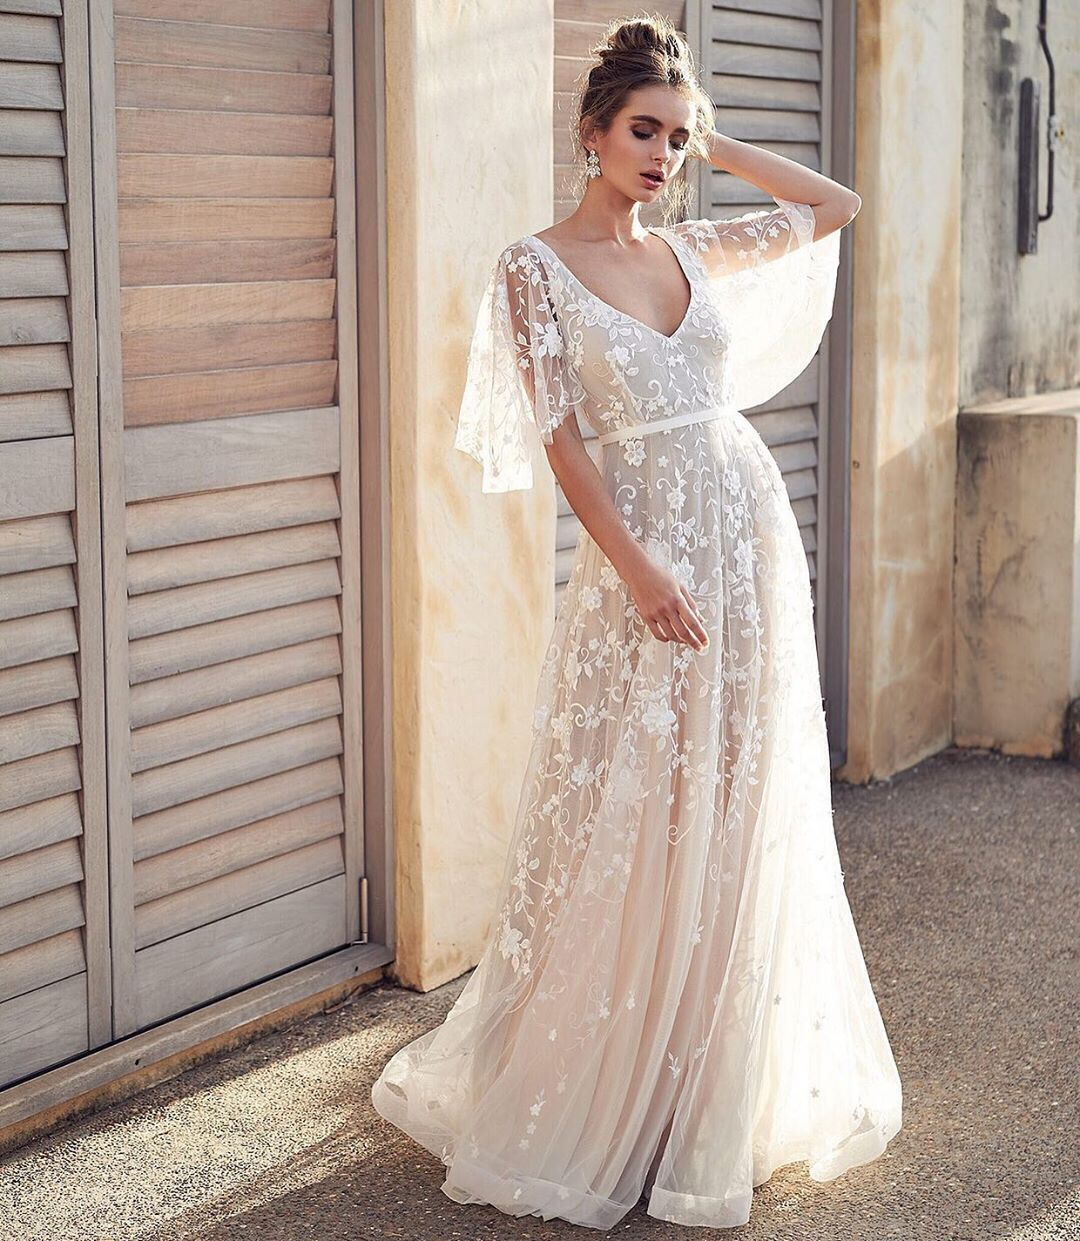 Romantic Lace Gowns Boutique Mother Of The Bride Dresses  The White Dress Bridal Boutique Bridal Gown Boutique Vals Bridal Boutique Free Shipping